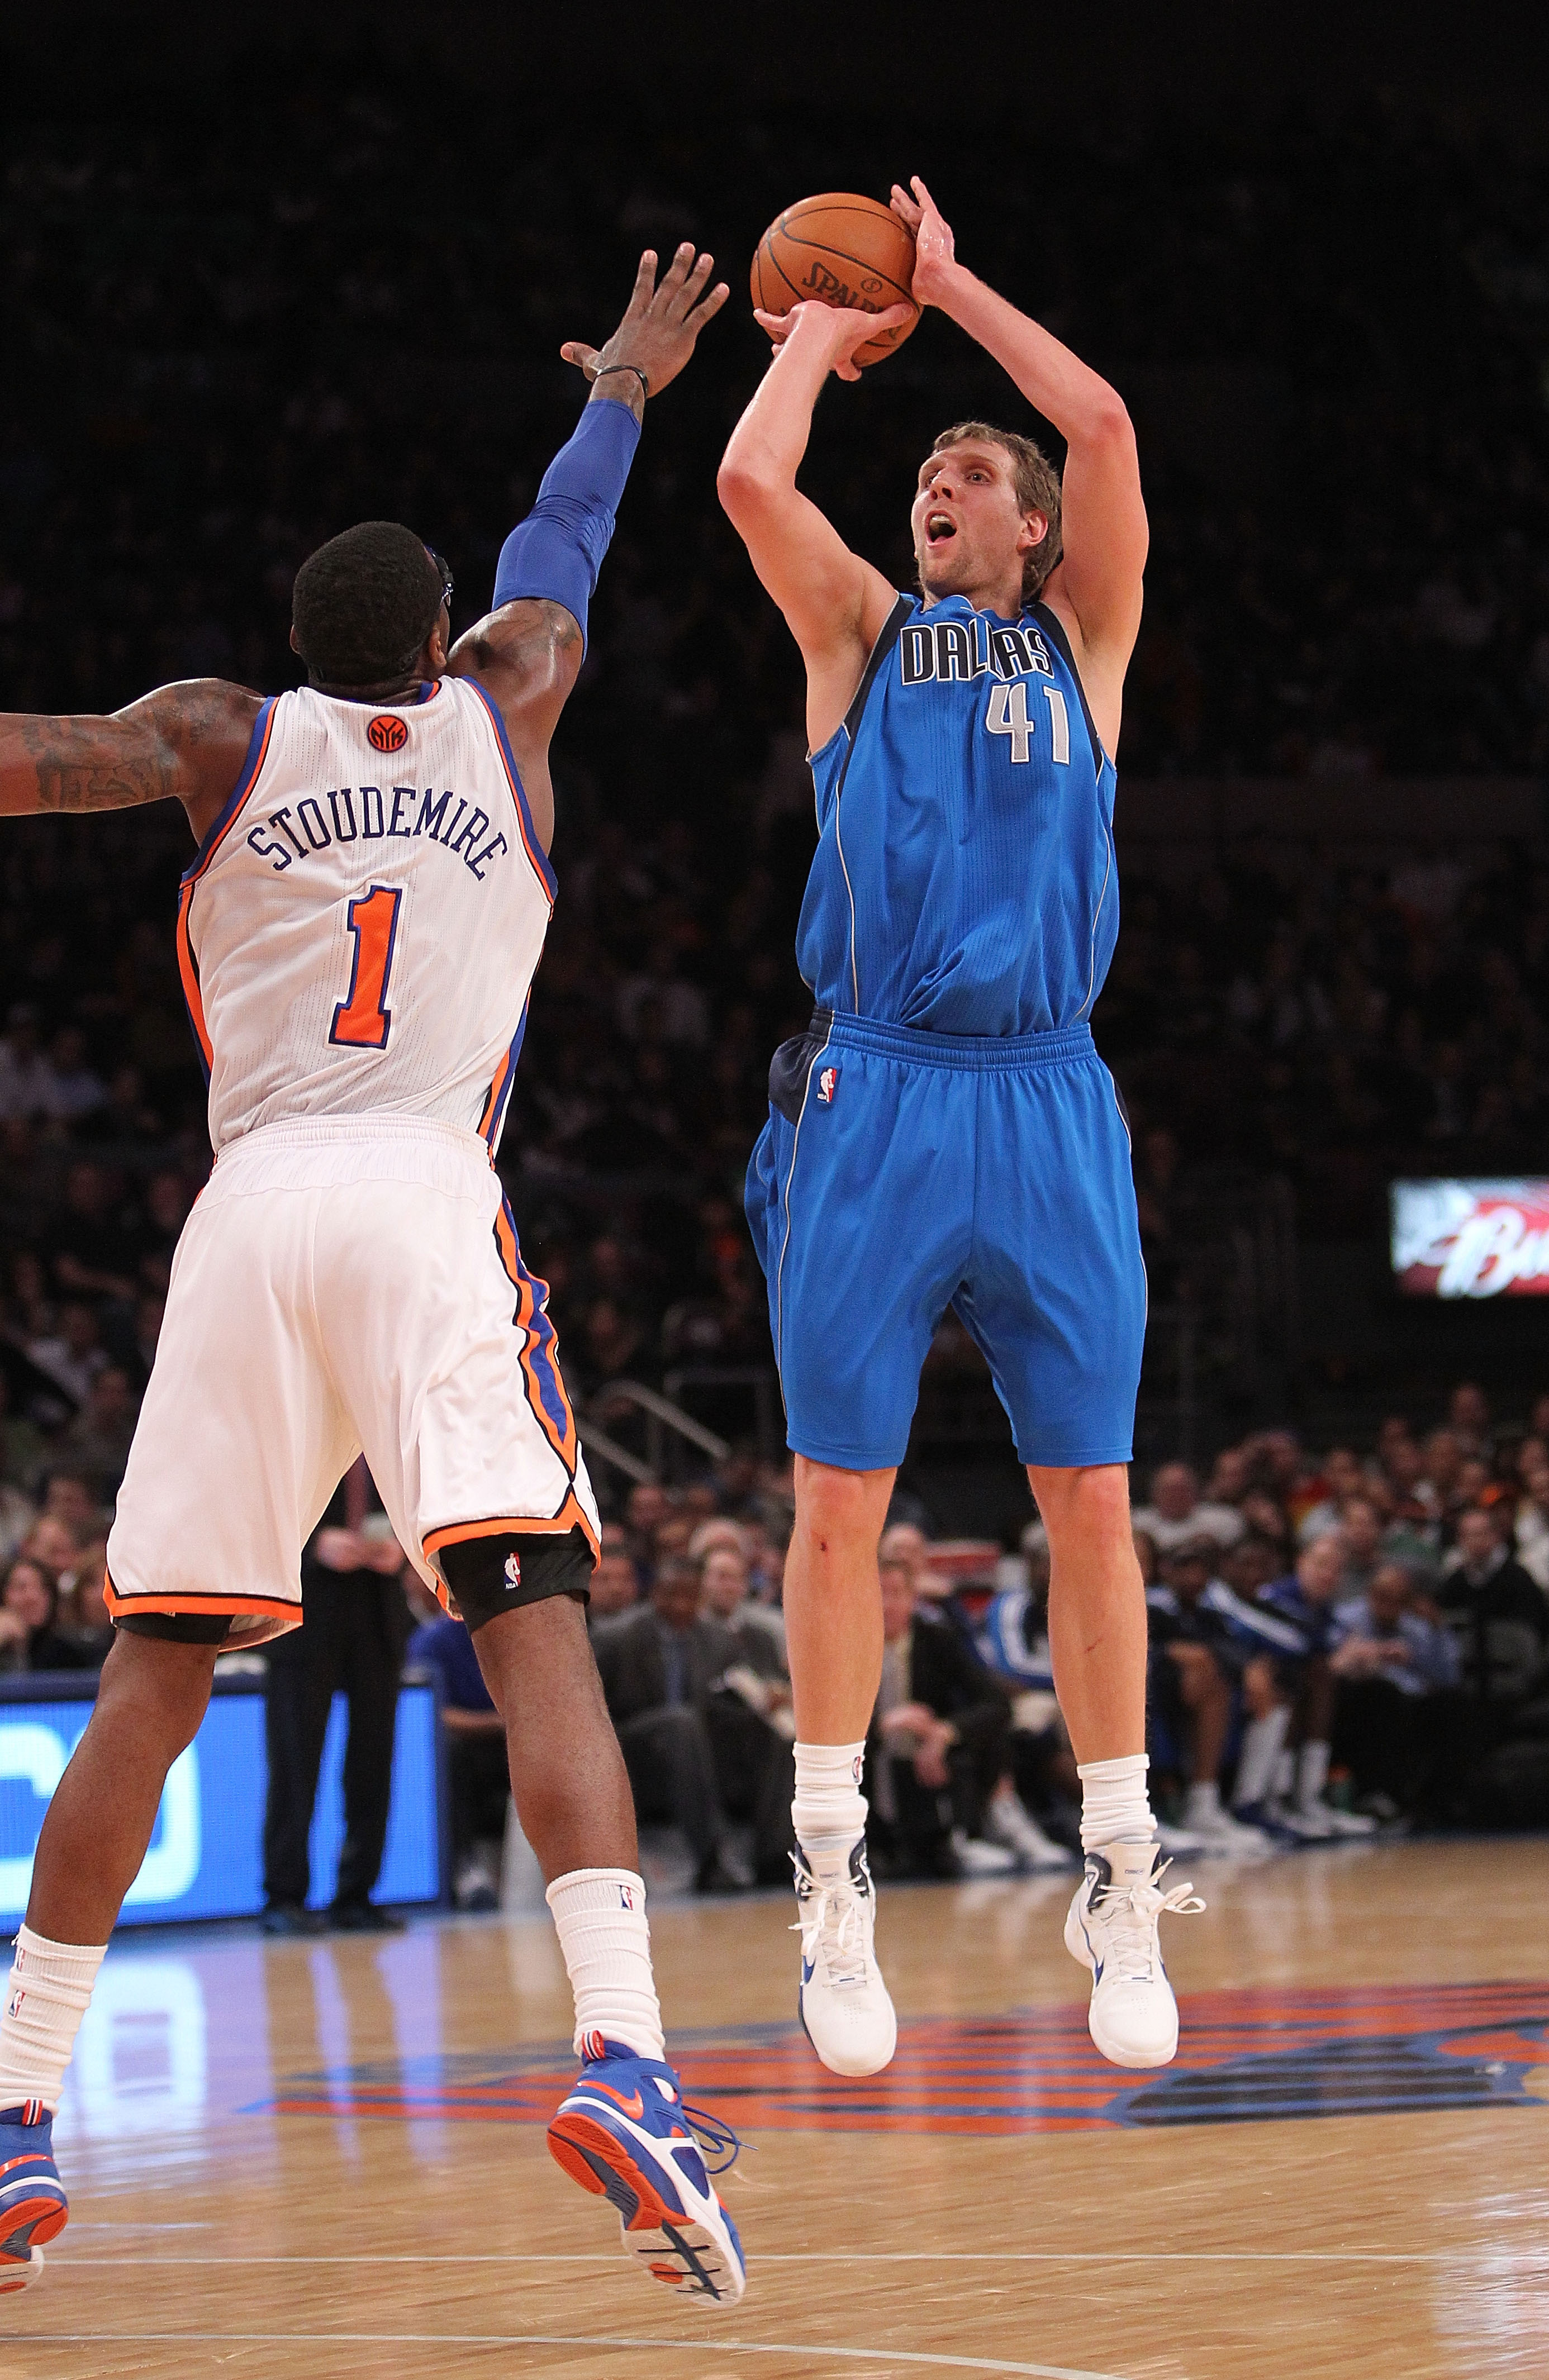 NEW YORK, NY - FEBRUARY 02: Dirk Nowitzki #41 of the Dallas Mavericks shoots over Amar'e Stoudemire #1 of the New York Knicks at Madison Square Garden on February 2, 2011 in New York City. NOTE TO USER: User expressly acknowledges and agrees that, by down